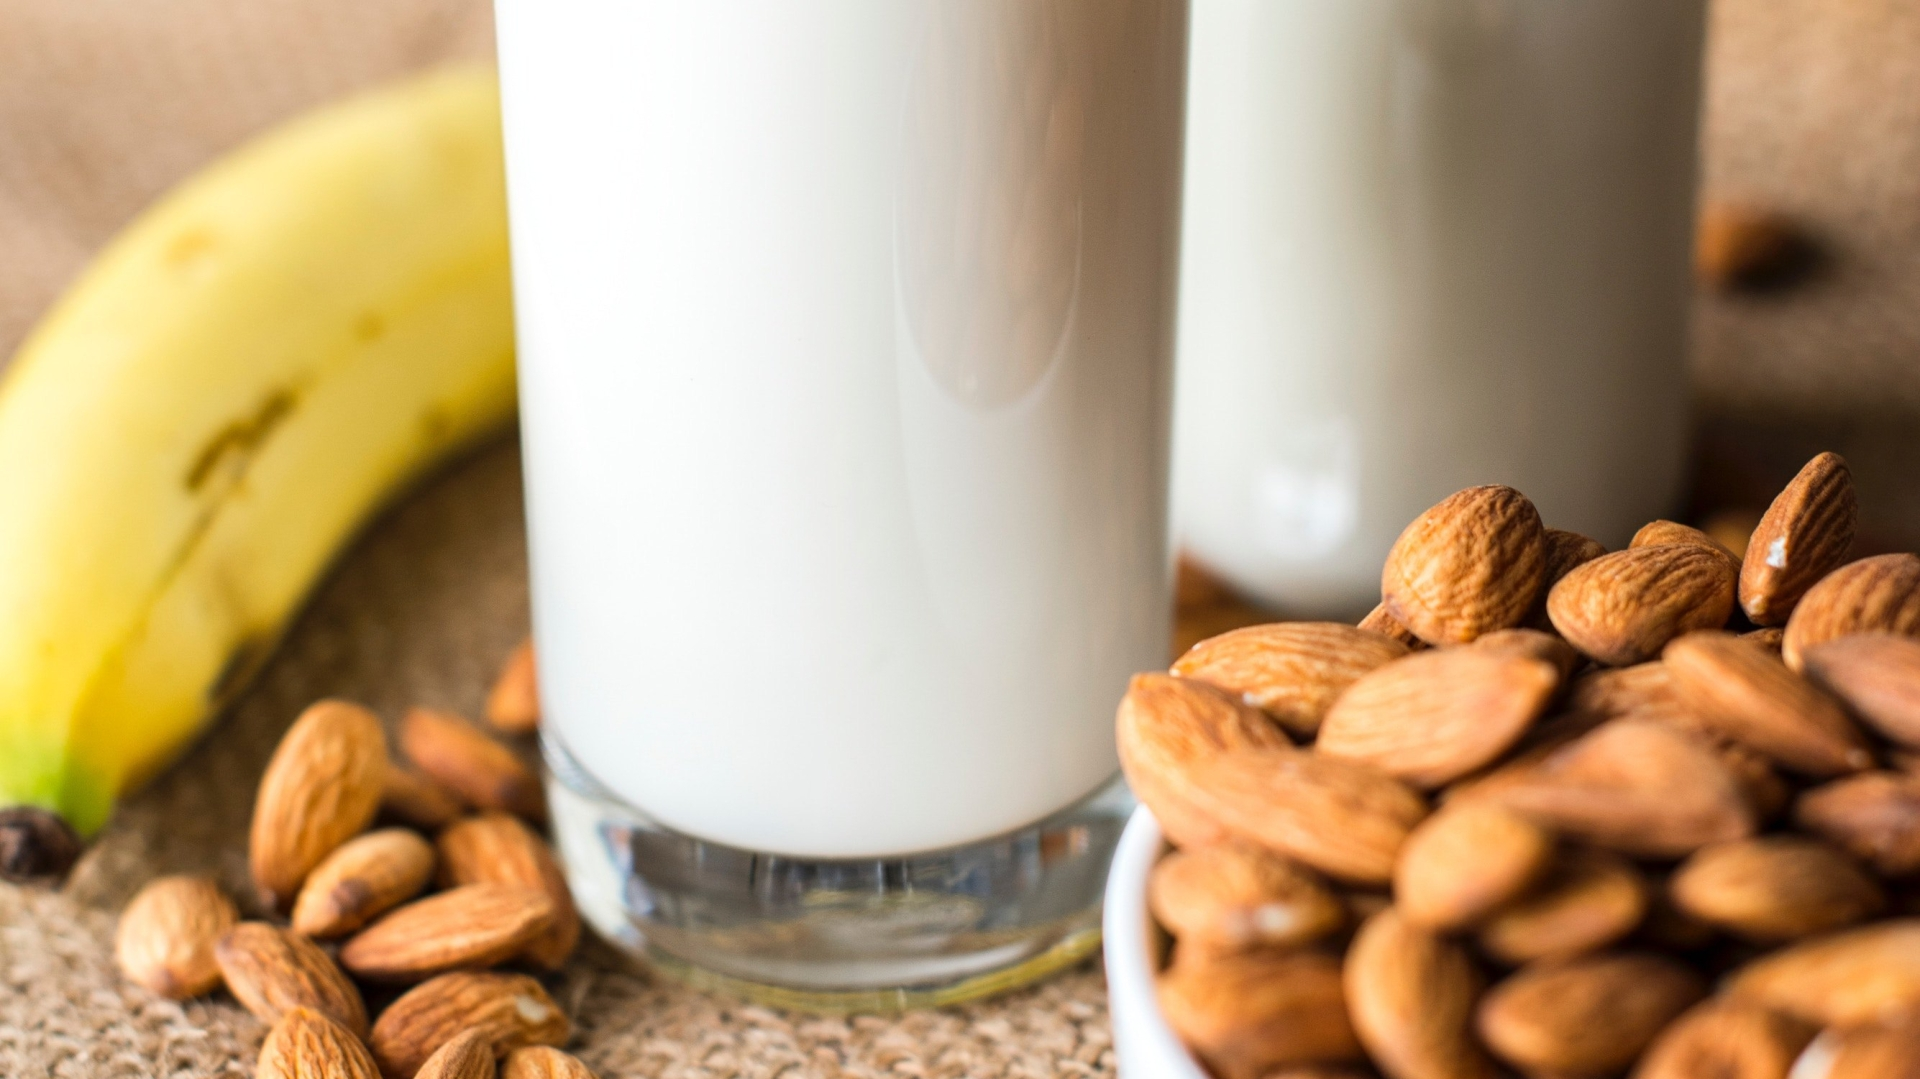 bananas, (almond) milk and almonds